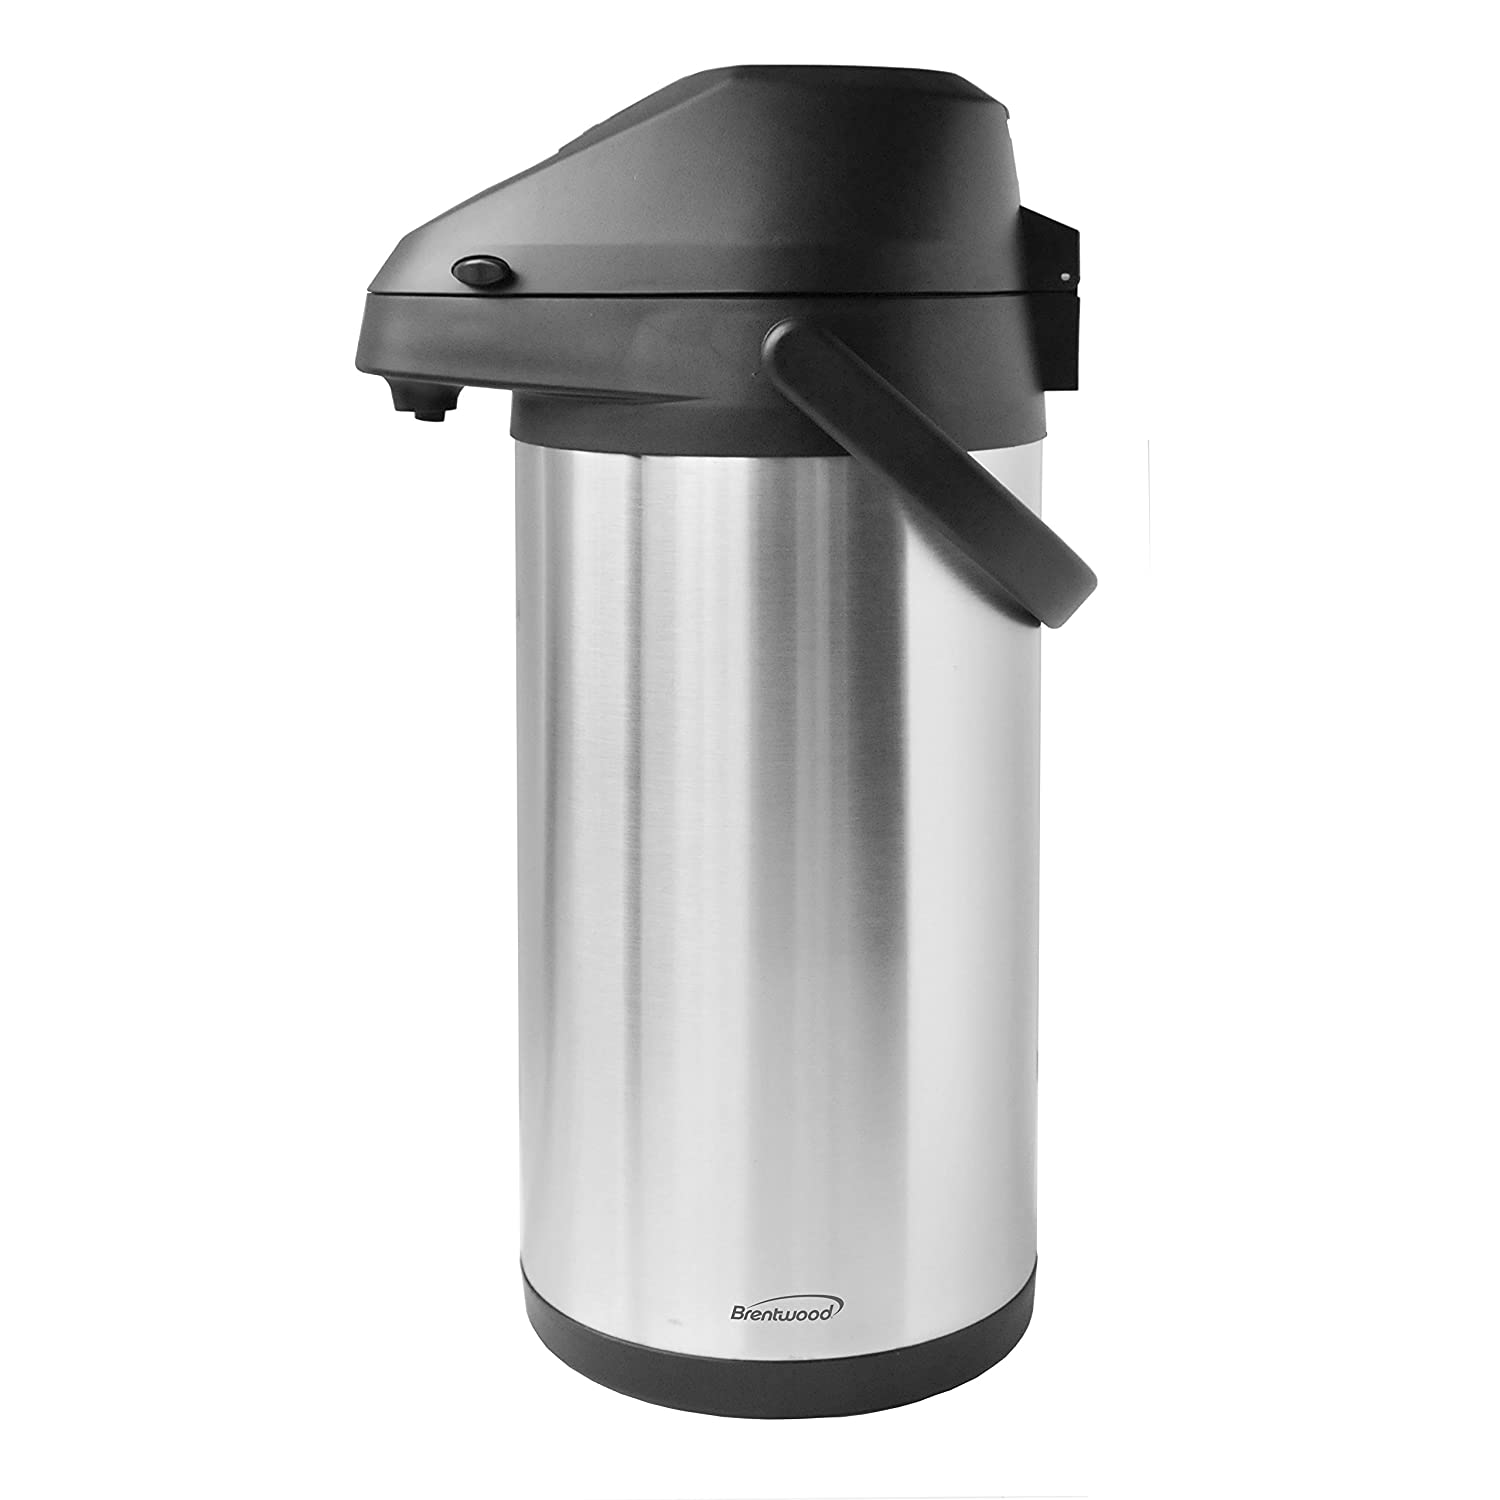 Brentwood CTSA-3500 3.5-Liter Airpot Hot & Cold Drink Dispenser, Stainless Steel